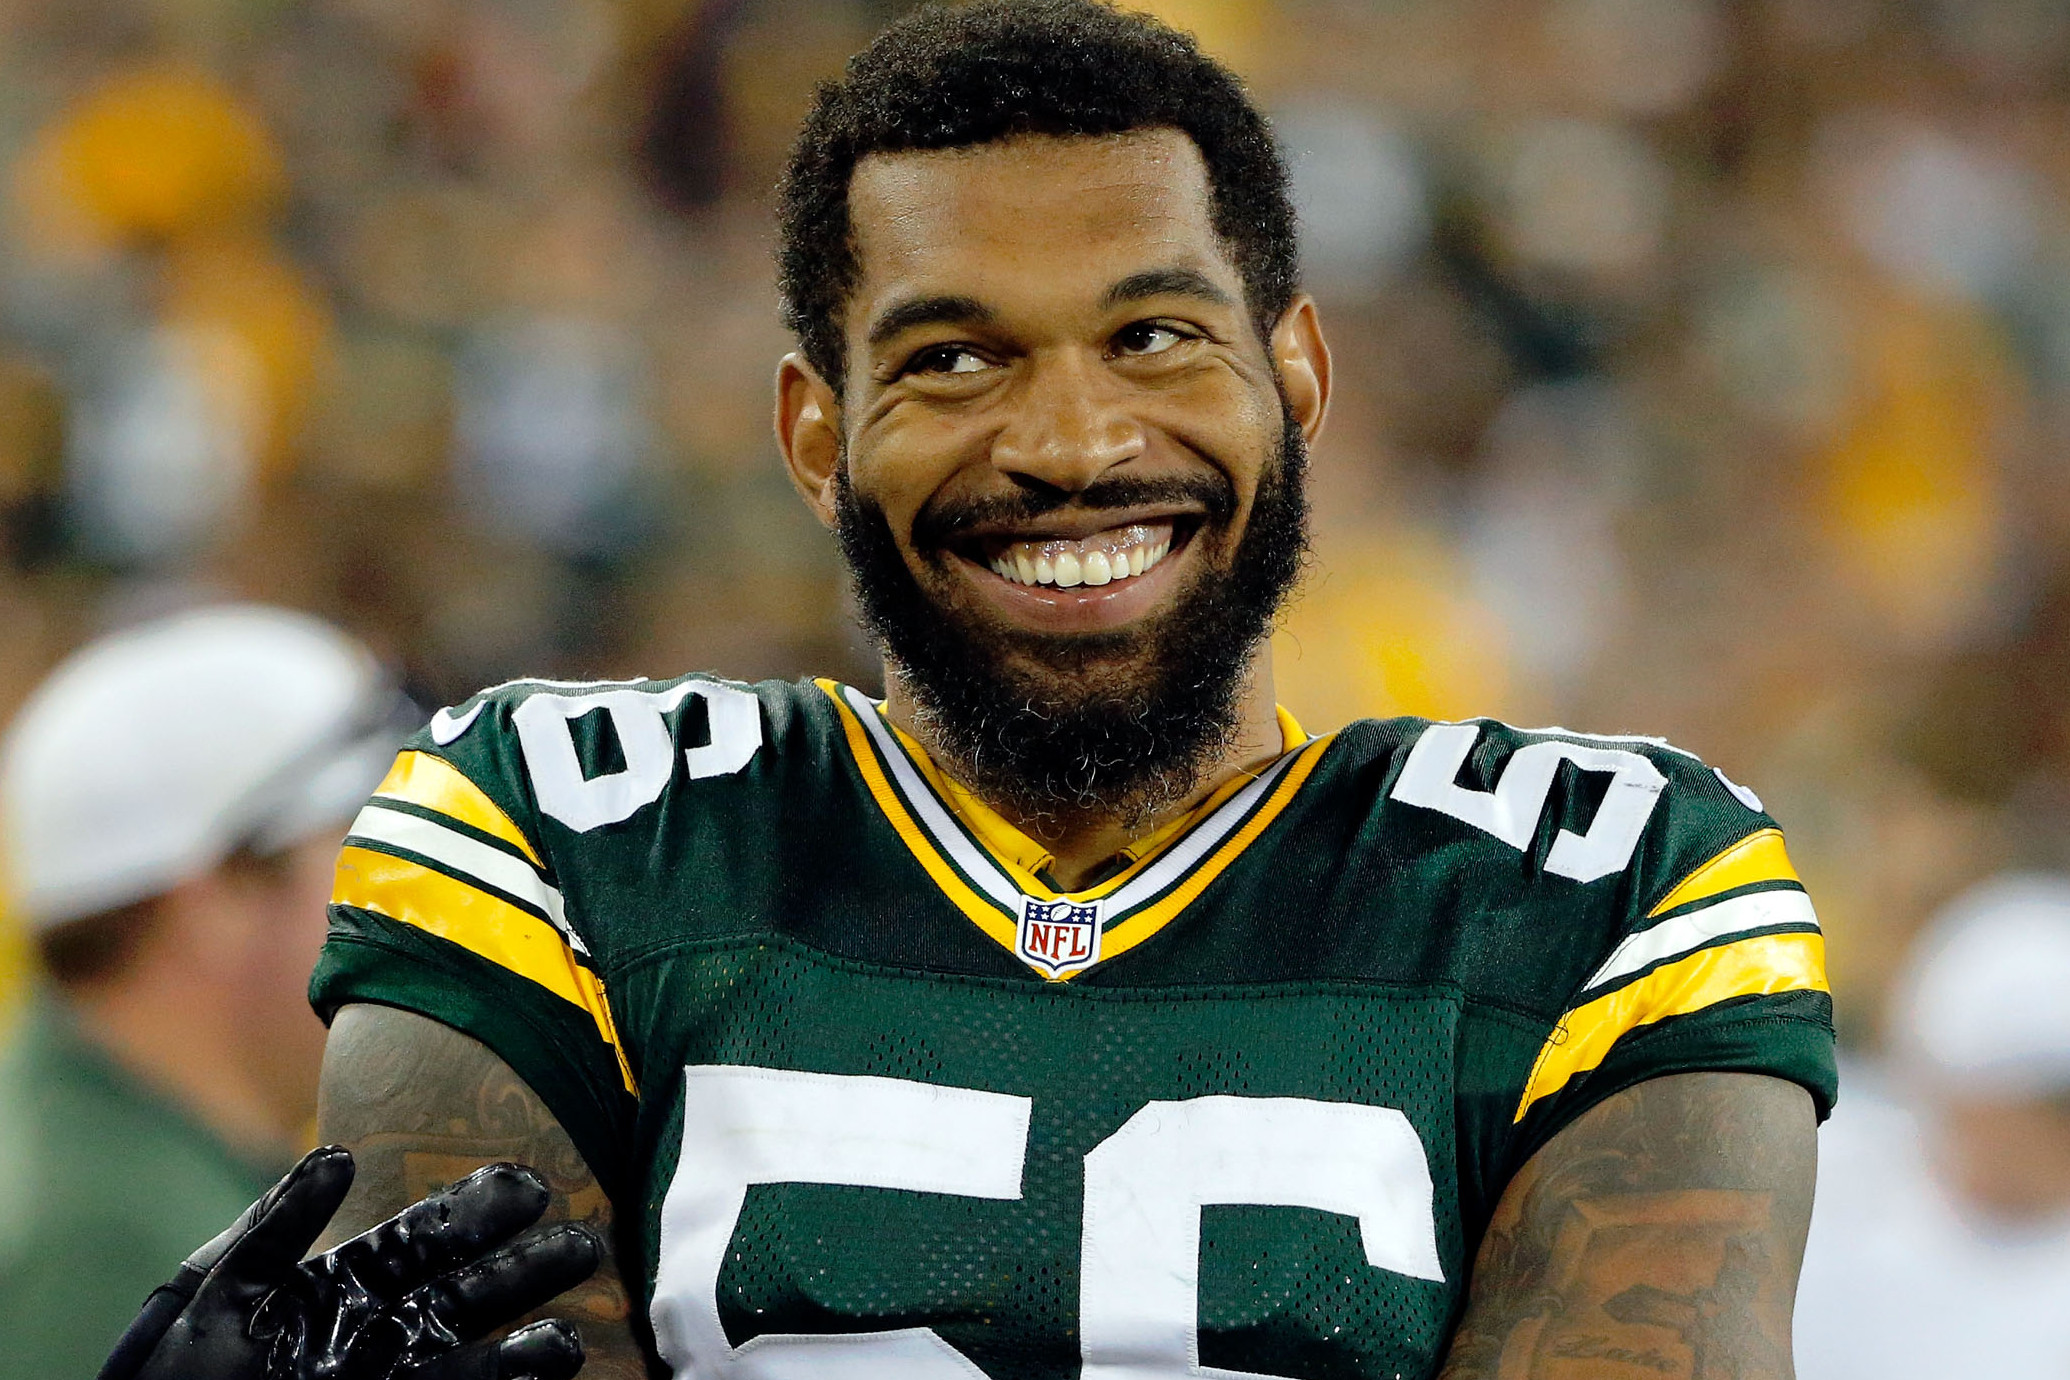 Julius Peppers Ethnicity, Race and Nationality